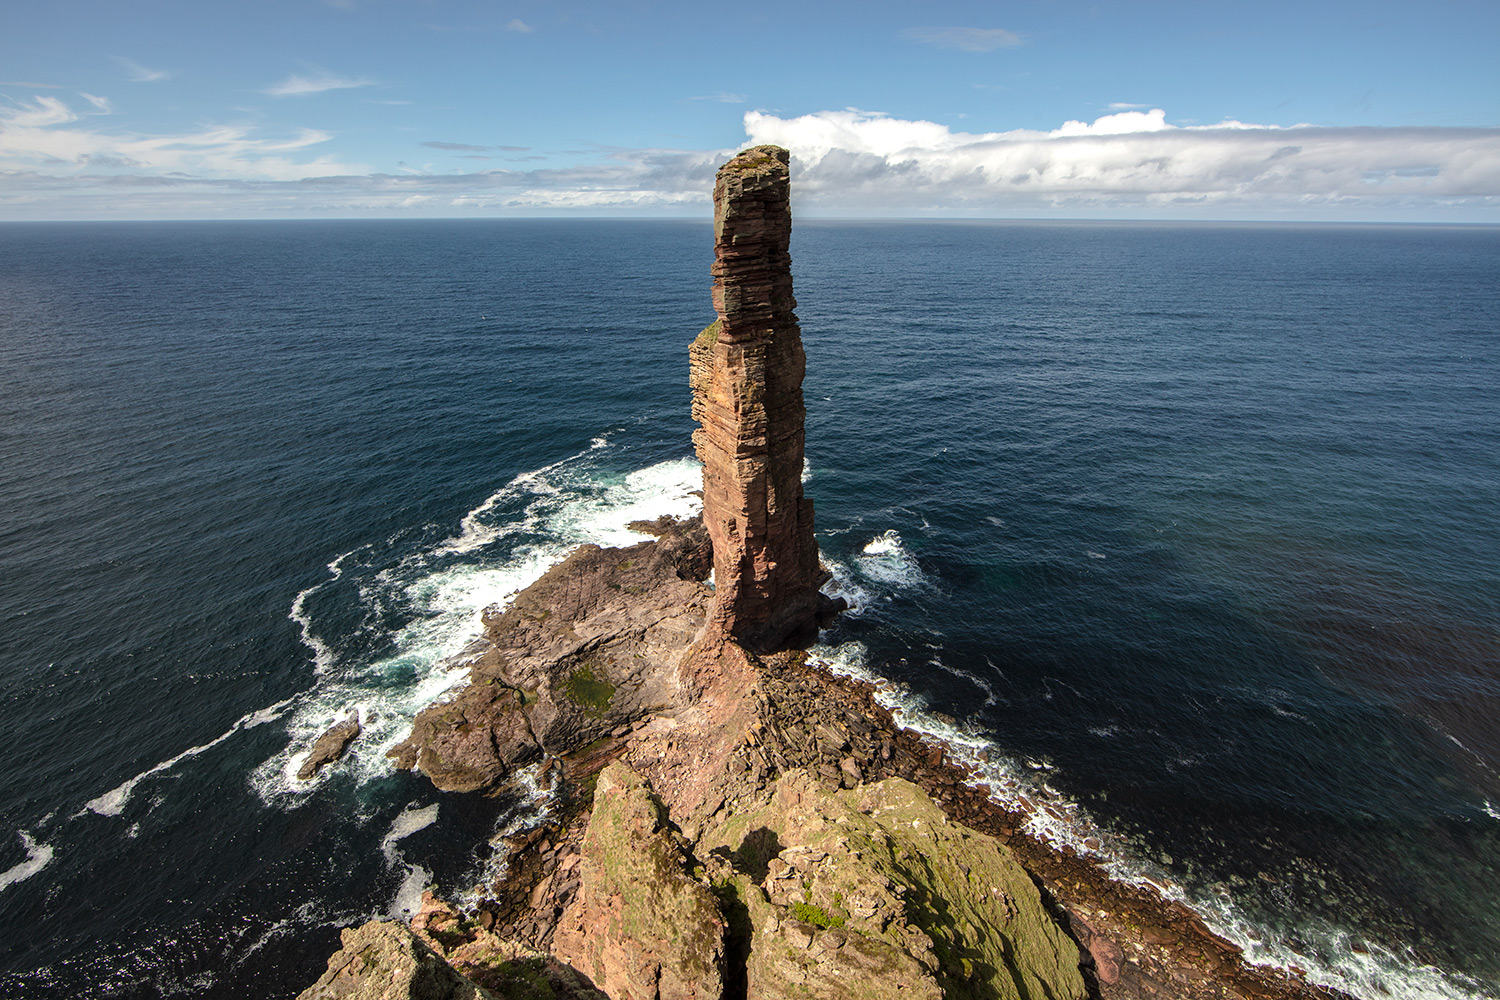 A picture of the Old Man of Hoy taken from the headland looking out to sea. The sea stack is 137 meters tall and is standing proud right in the middle of the picture. Waves are crashing around its base and it is a beautiful blue sky day.